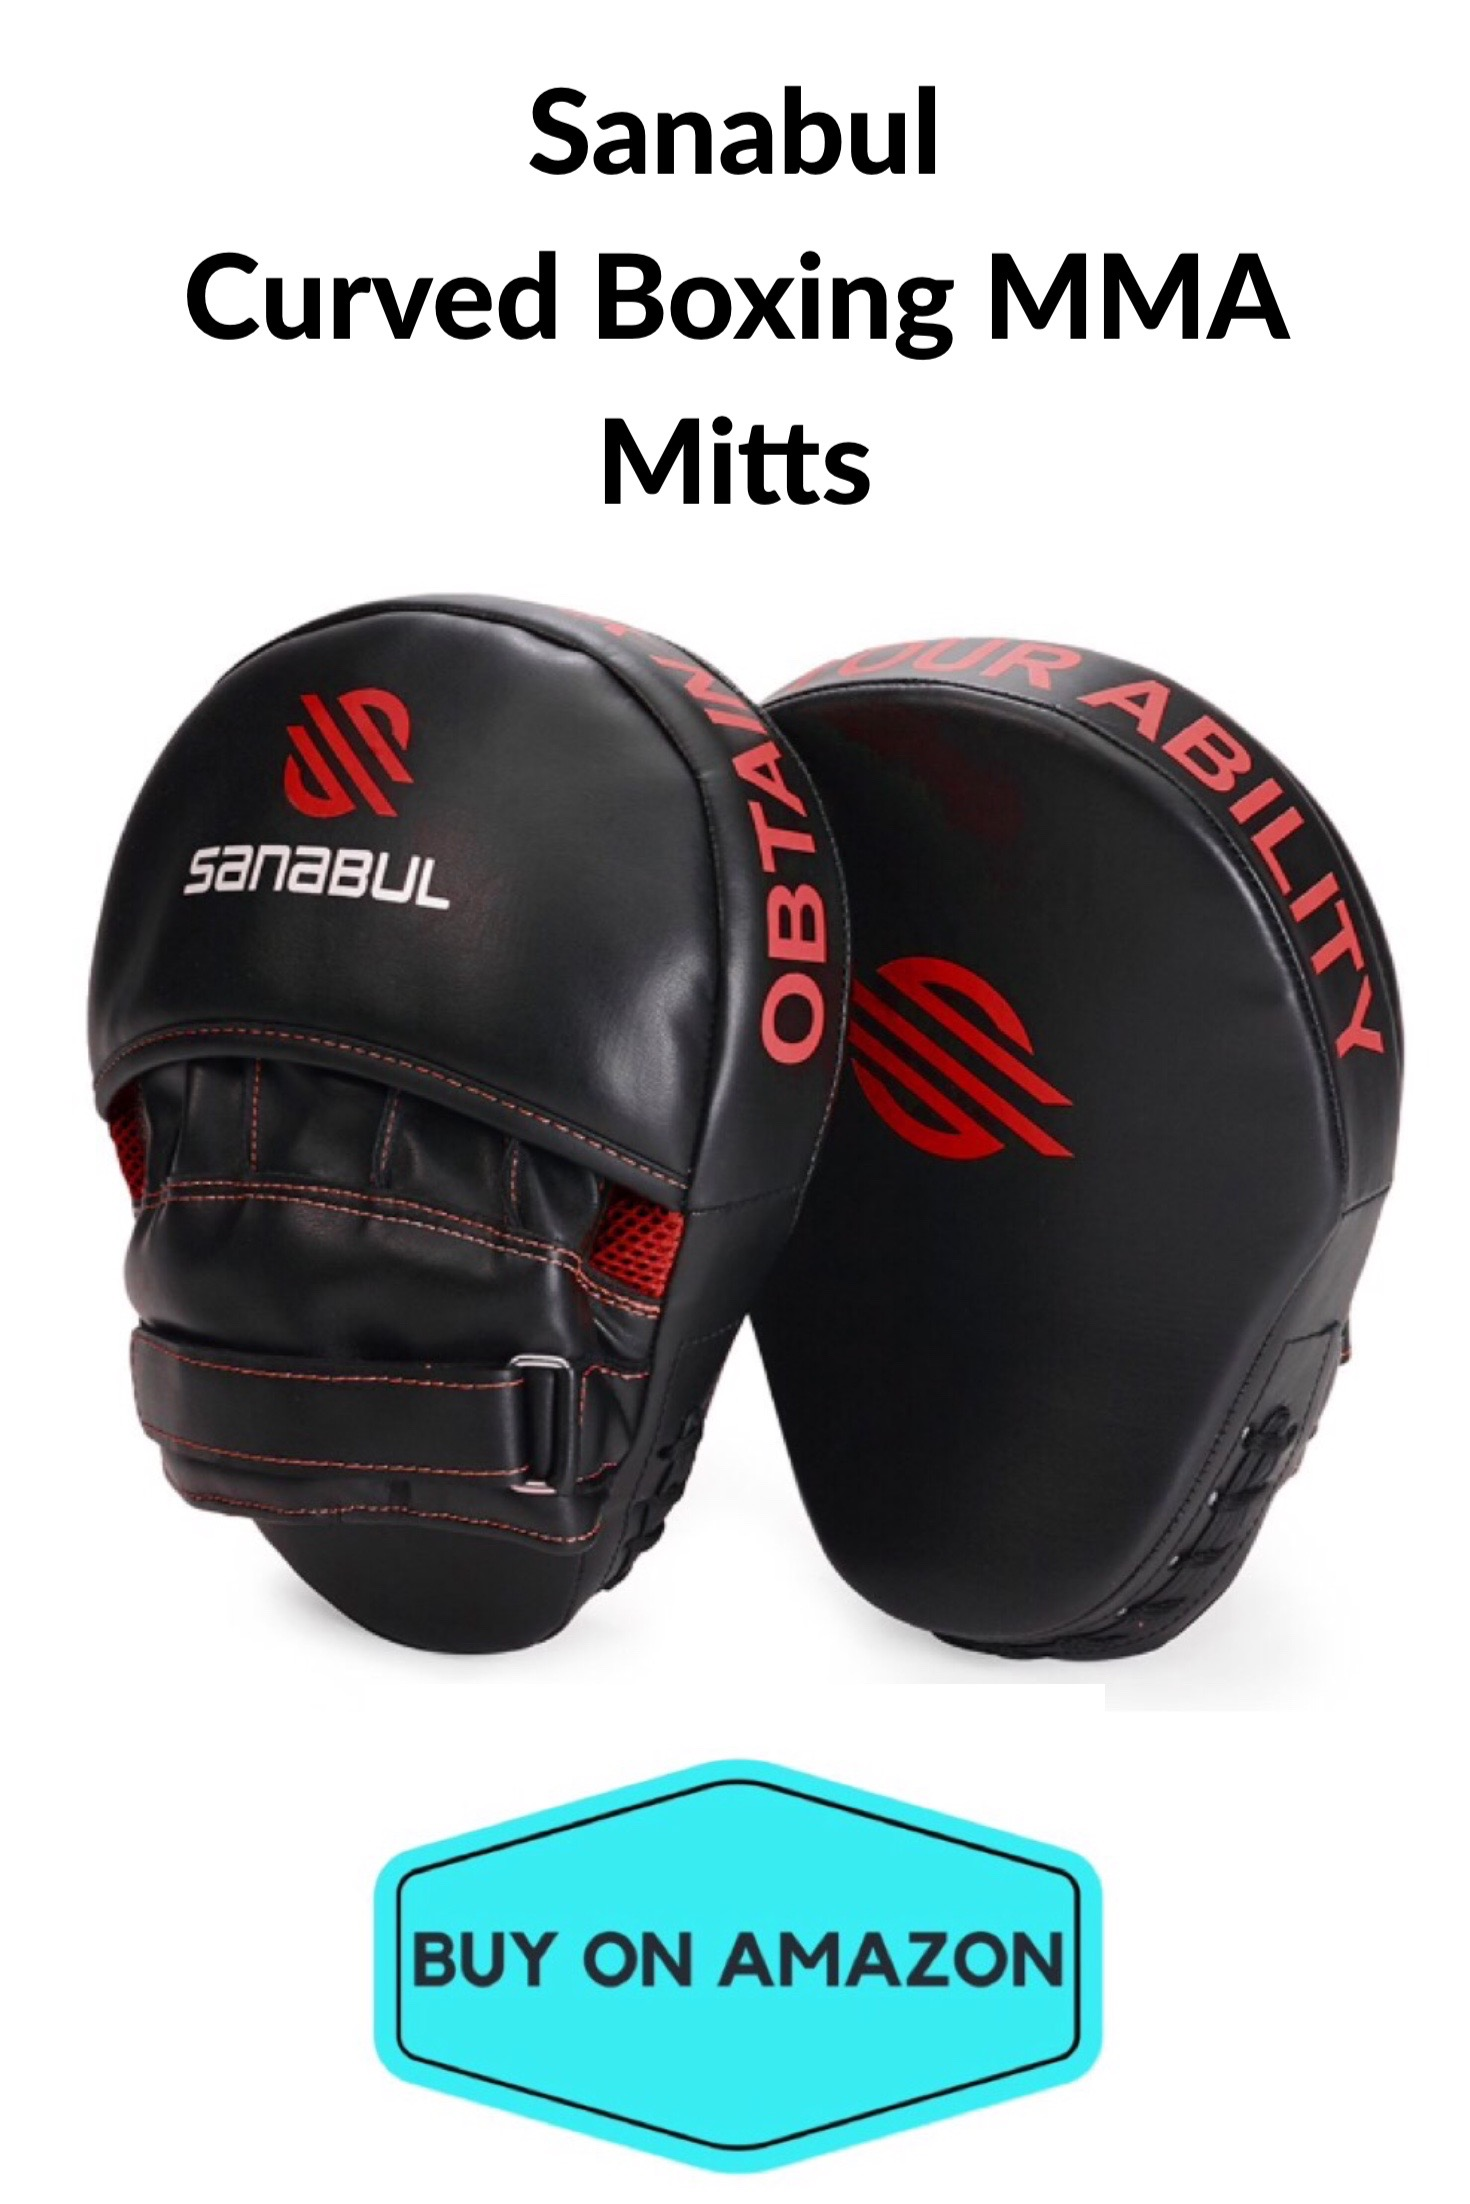 Sanabul Curved Boxing MMA Punching Mitts